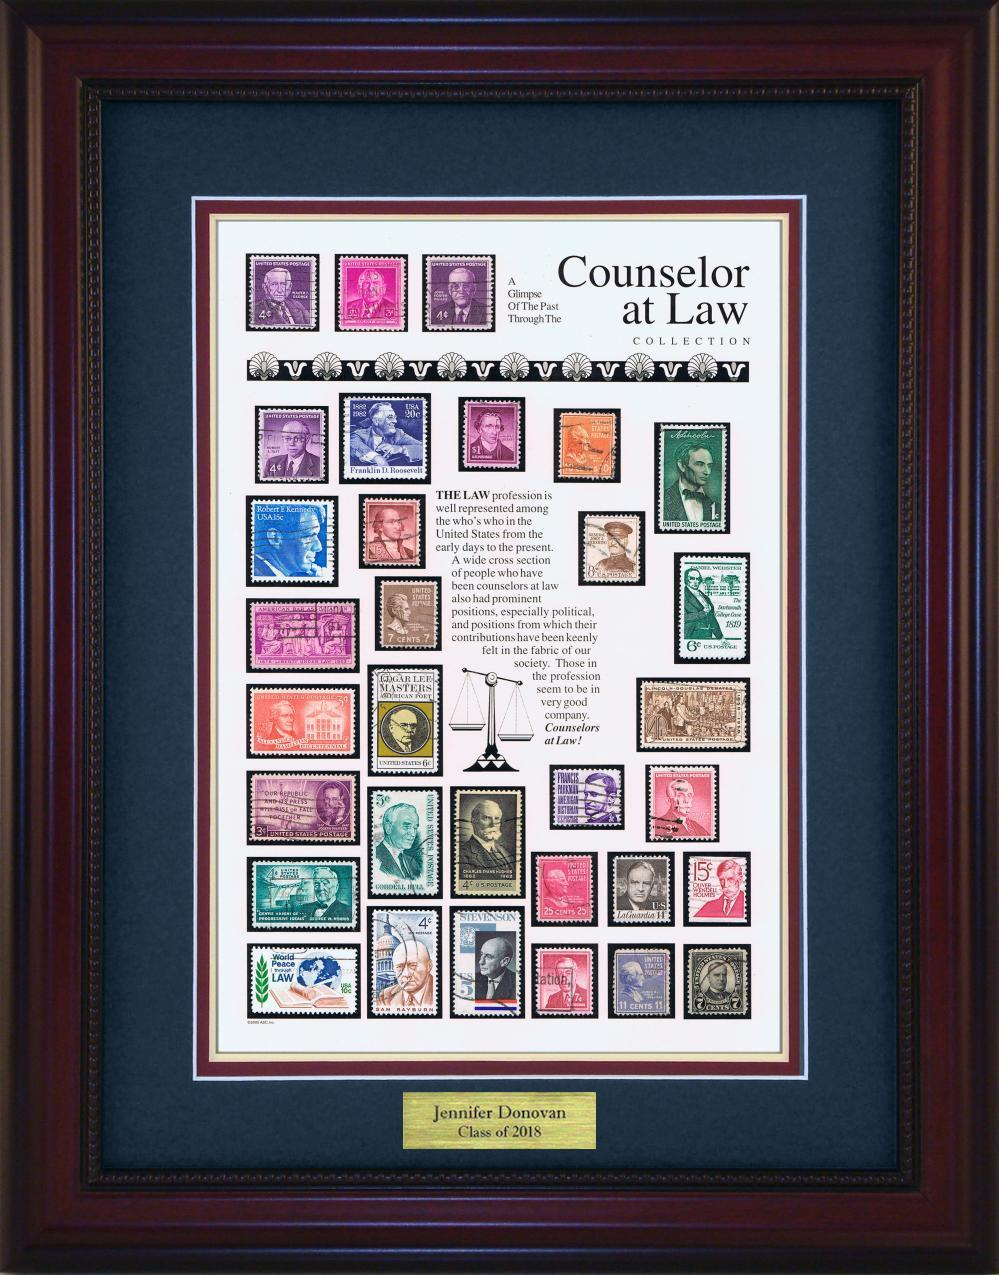 Counselor at Law - Personalized Unique Framed Gift